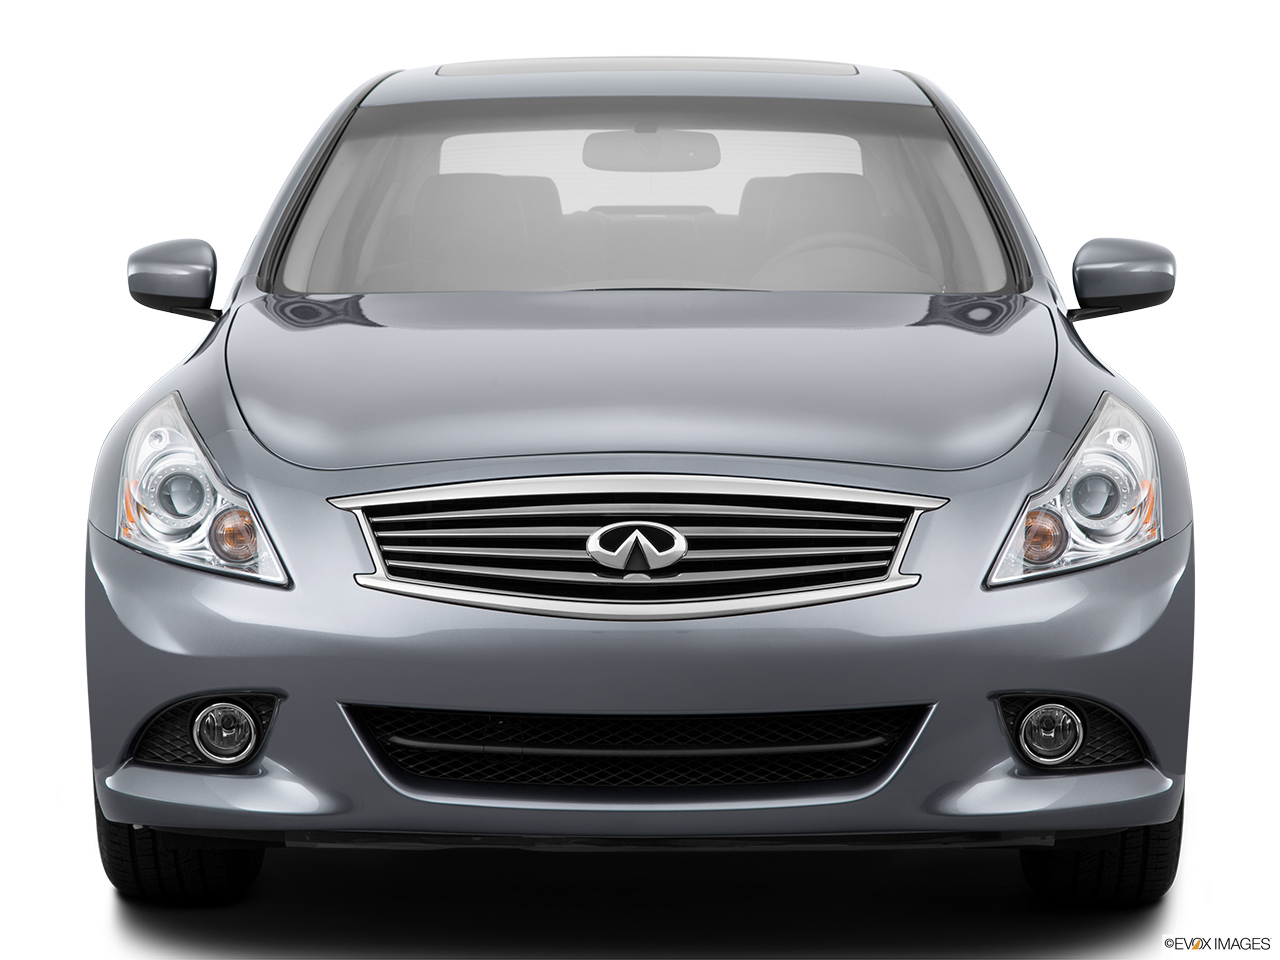 2015 Infiniti Q40 Base Low/wide front.